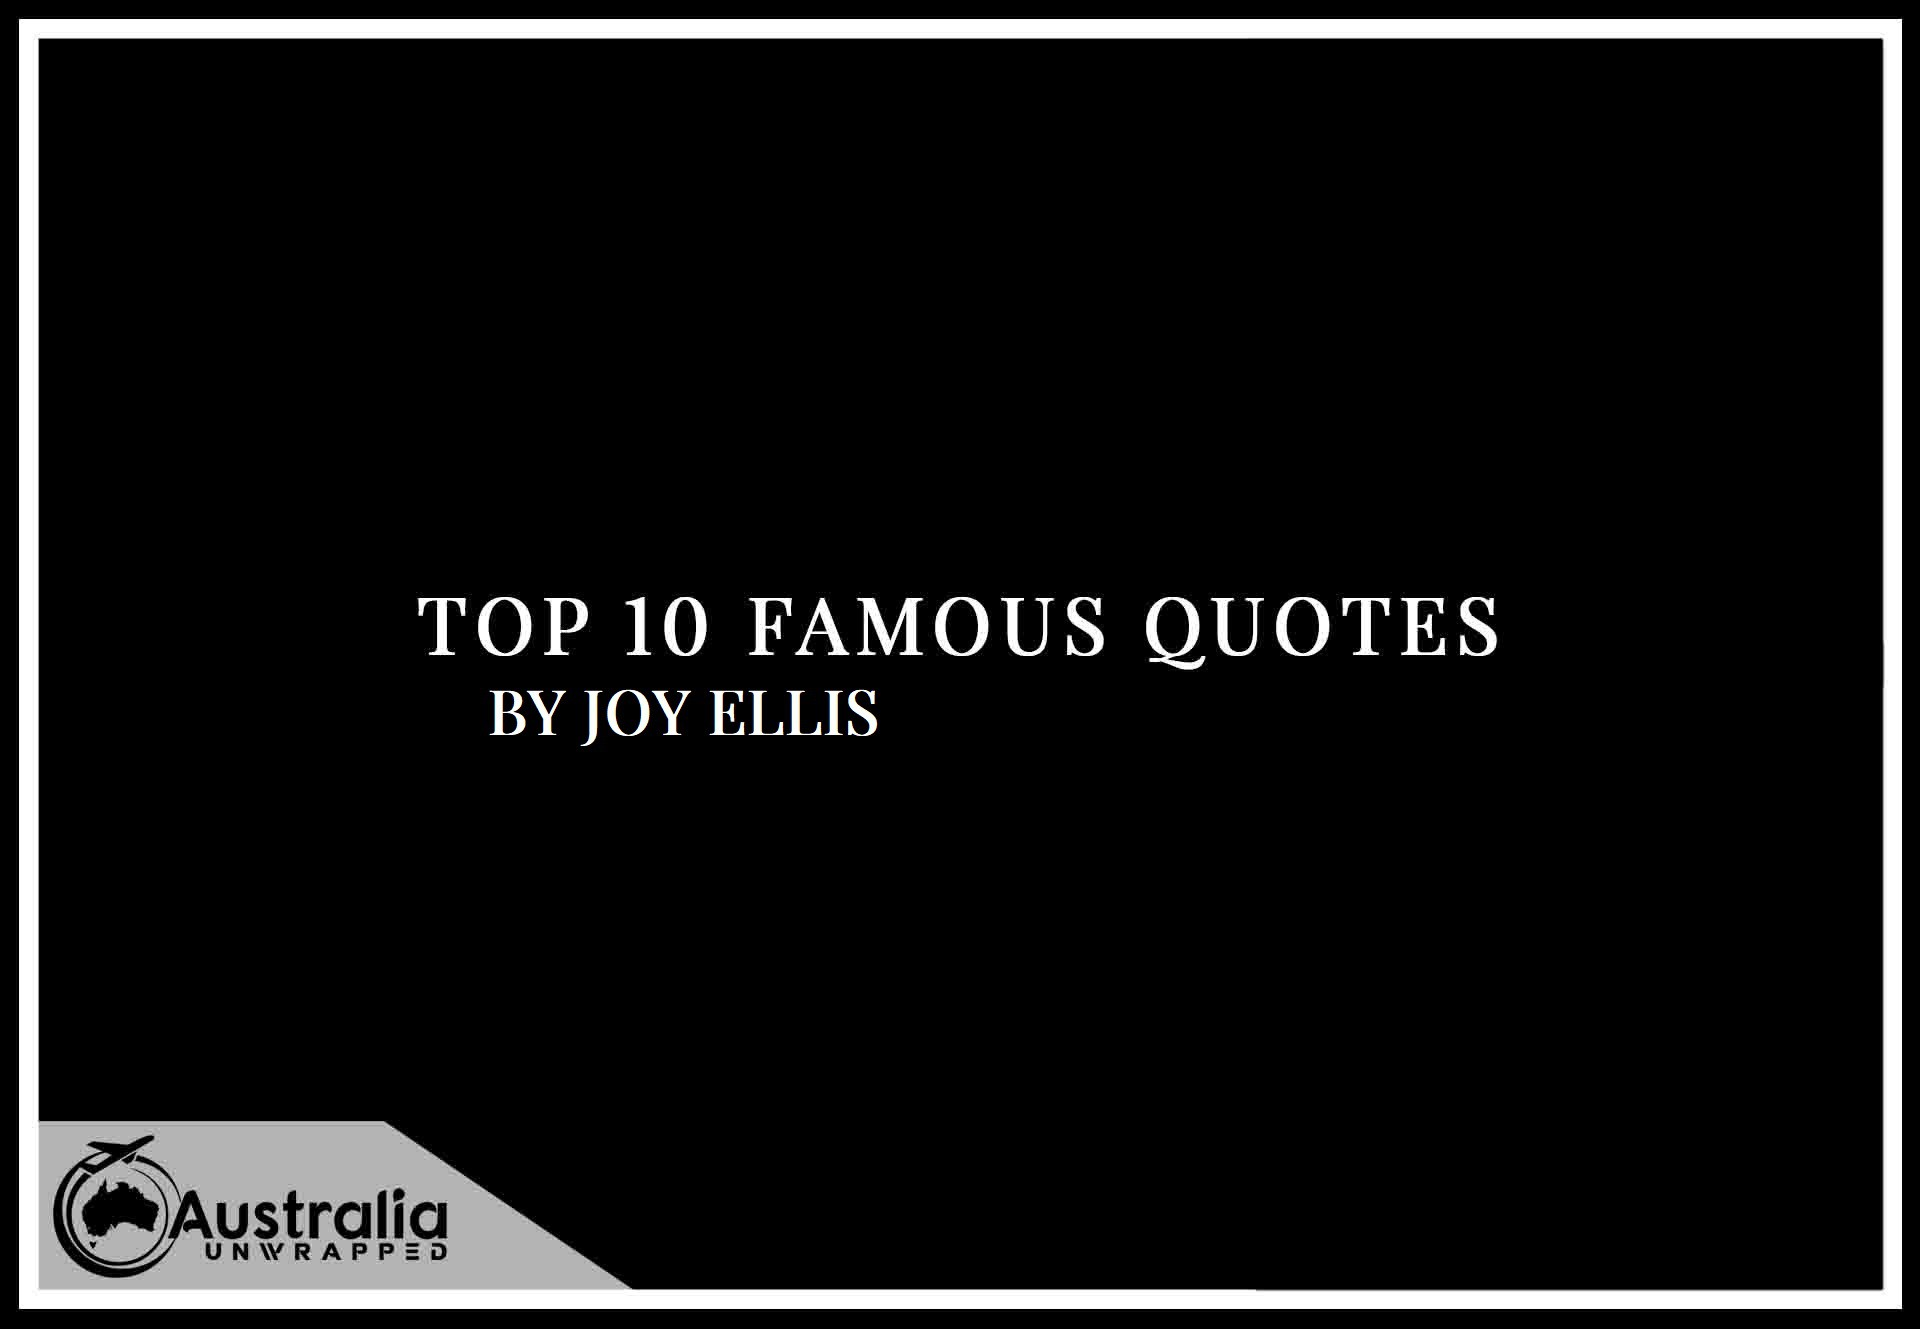 Top 10 Famous Quotes by Author Joy Ellis